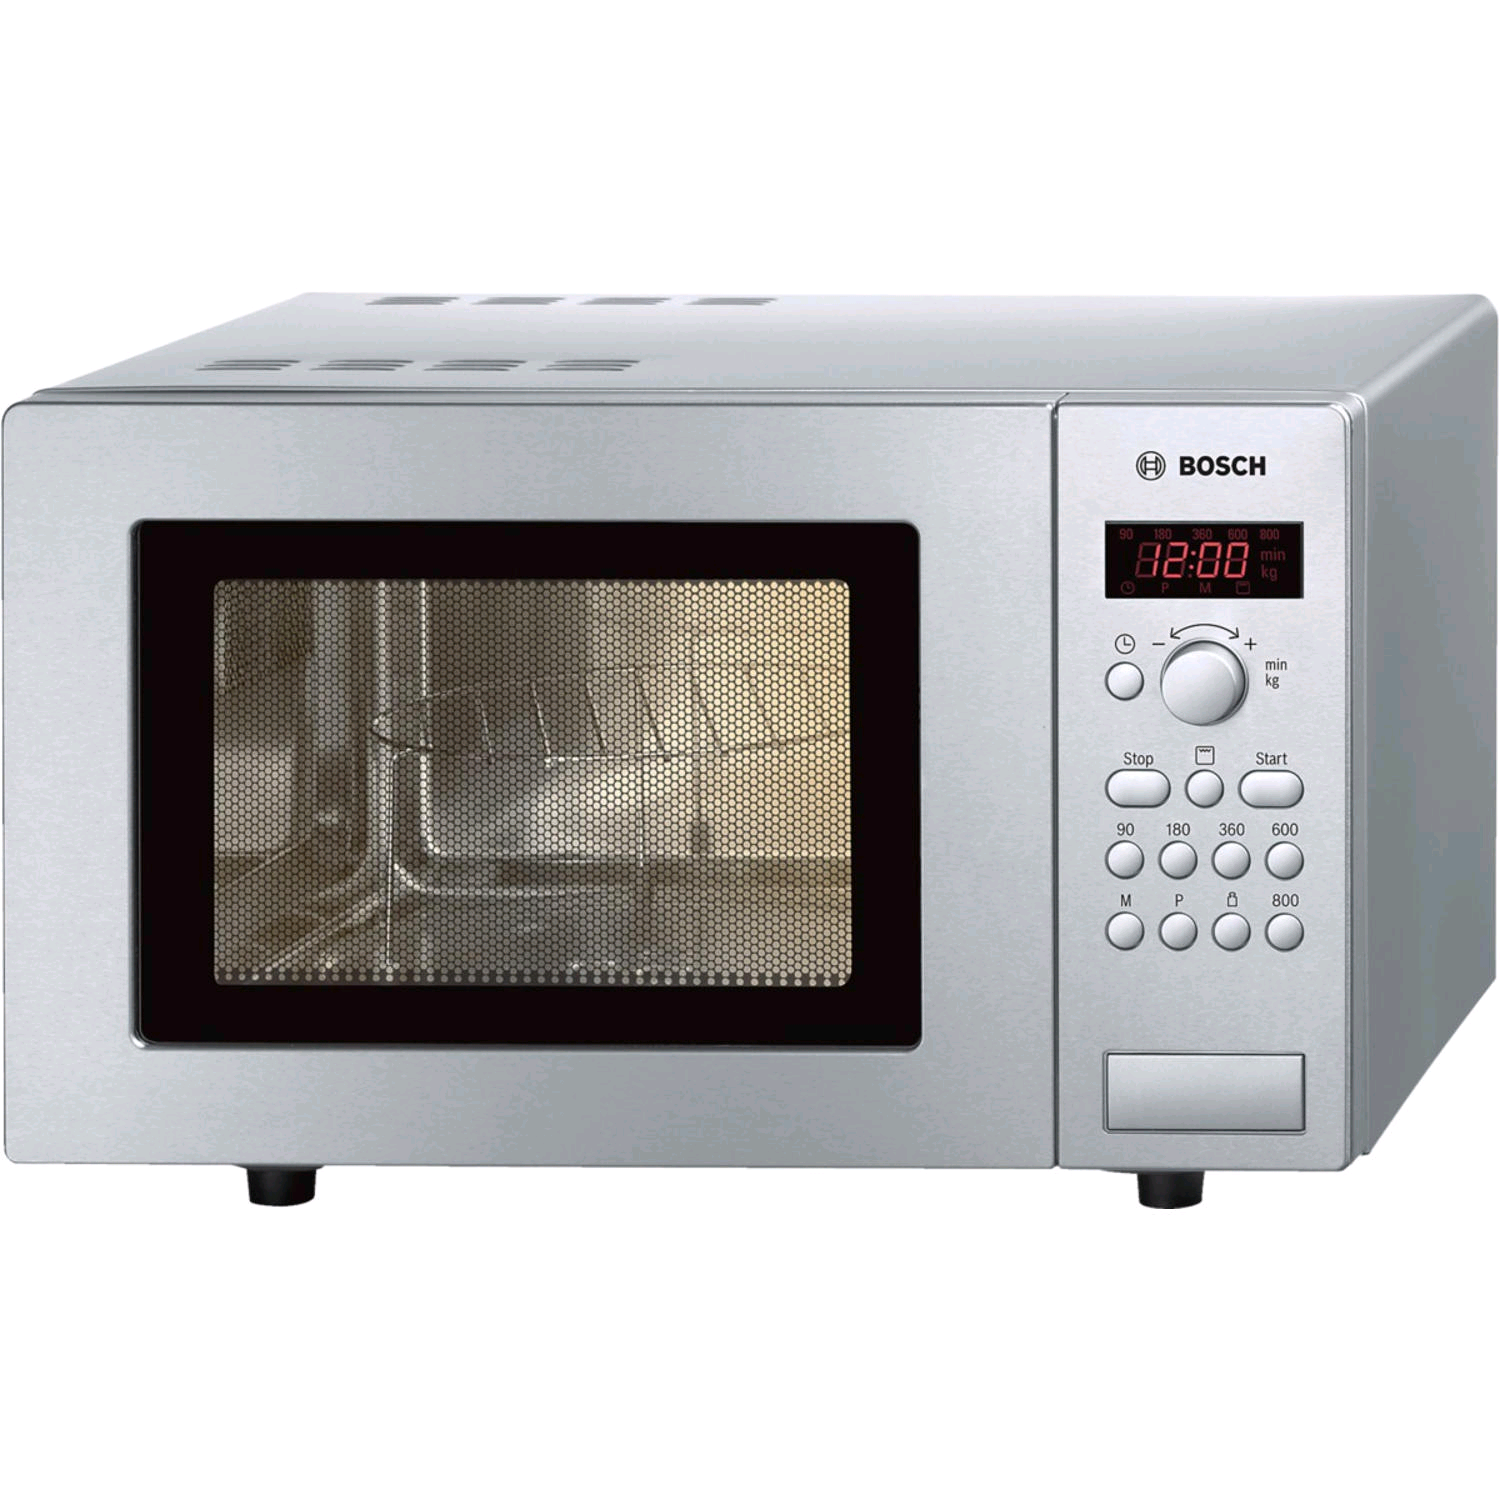 Bosch Microwave + Grill 17L 800w Stainless Steel